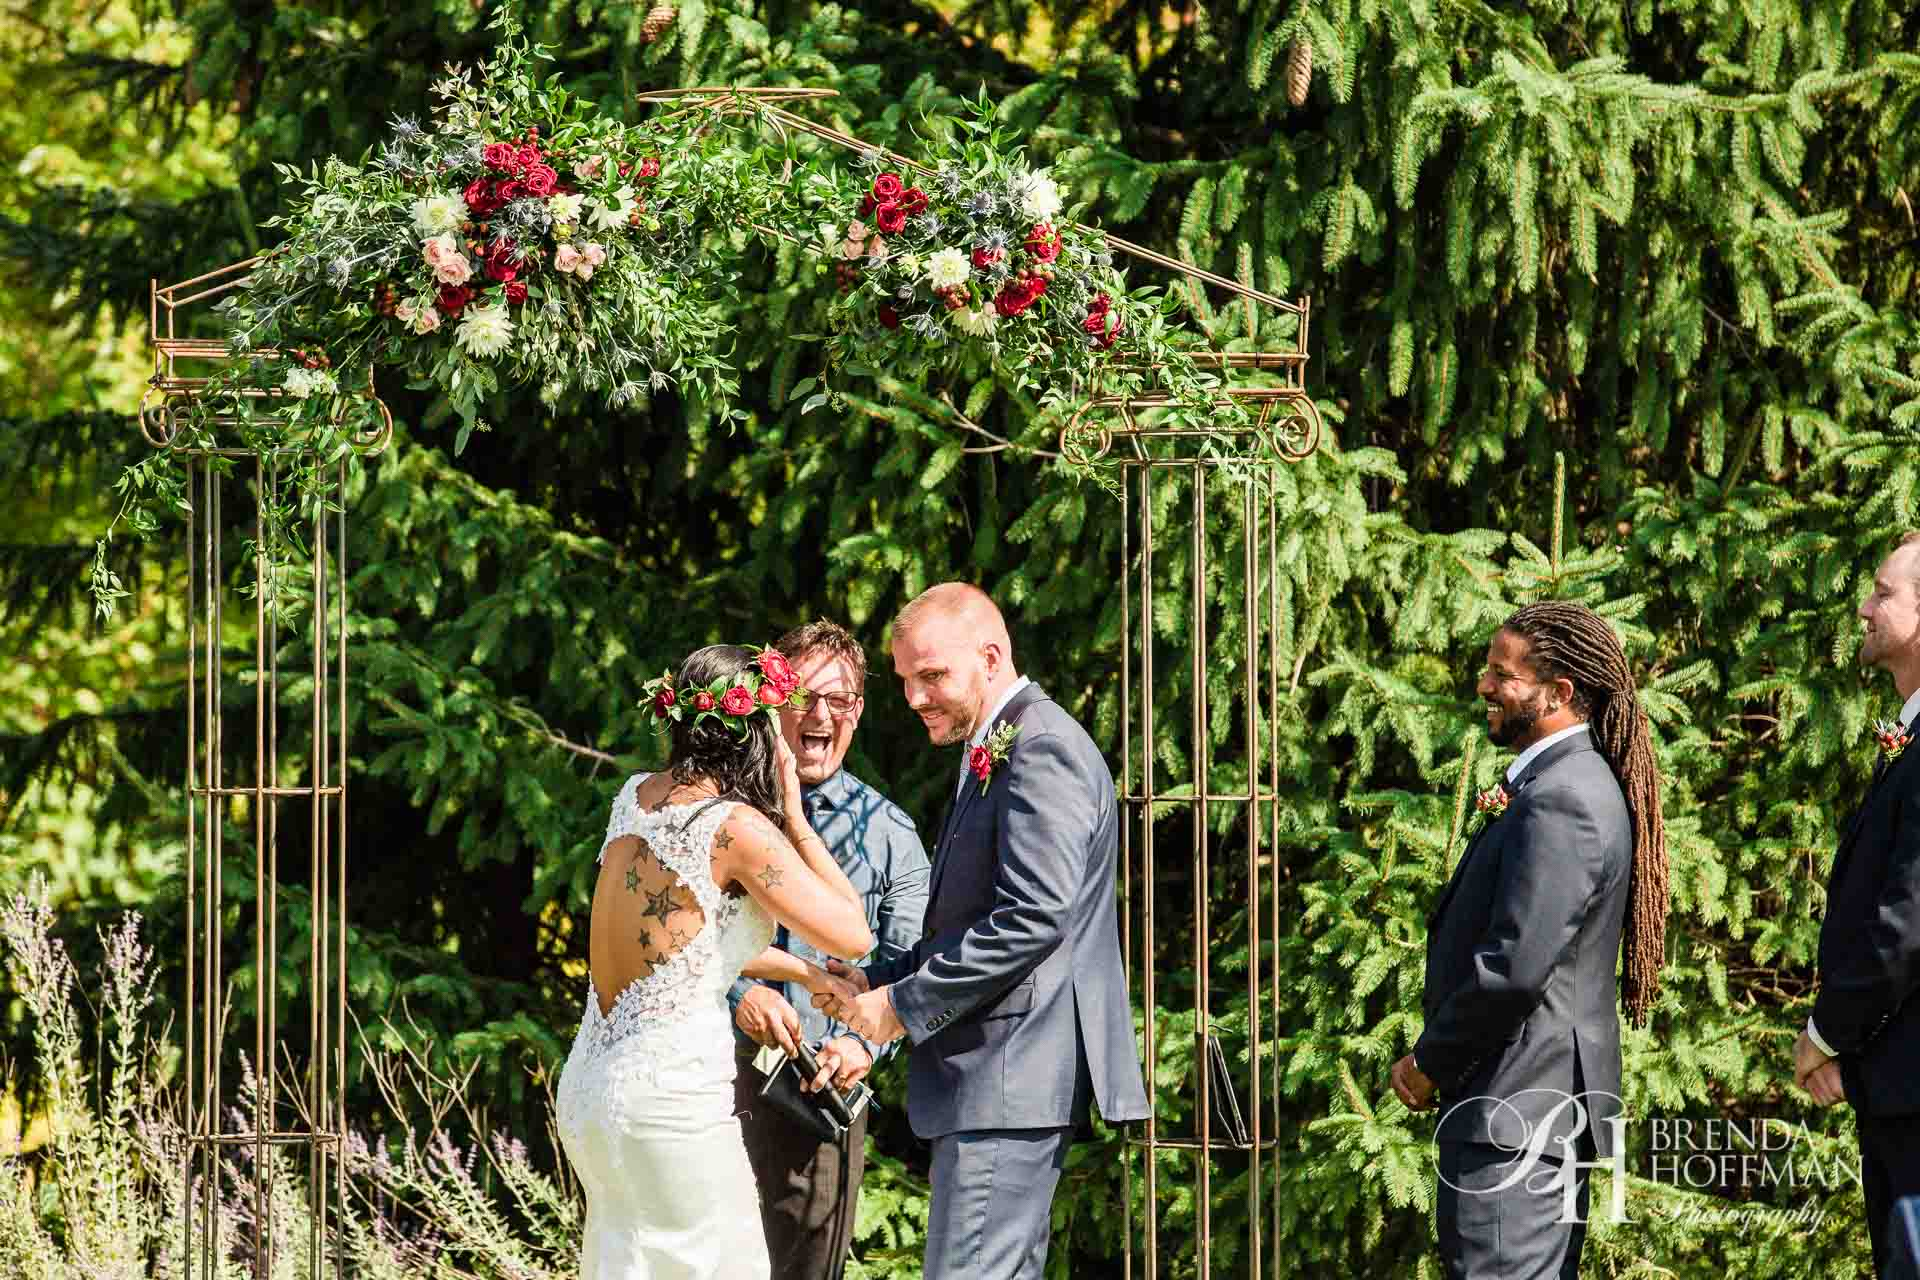 Frederik Meijer Gardens BOB Eve Nightclub Wedding 23